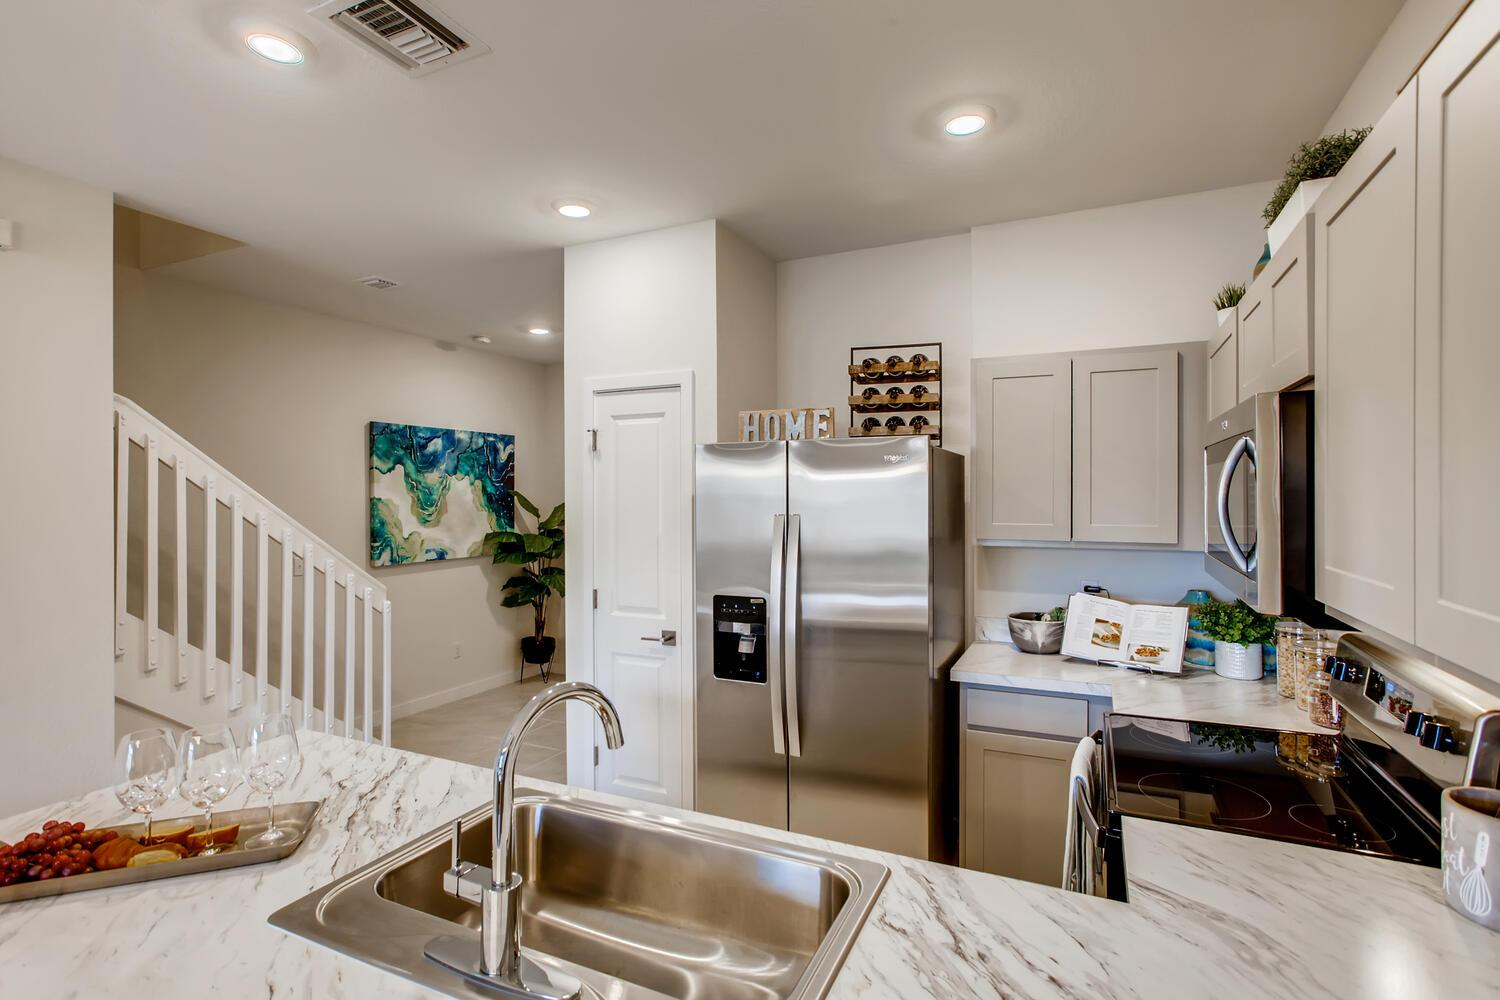 Kitchen featured in the Waverly By D.R. Horton in Palm Beach County, FL